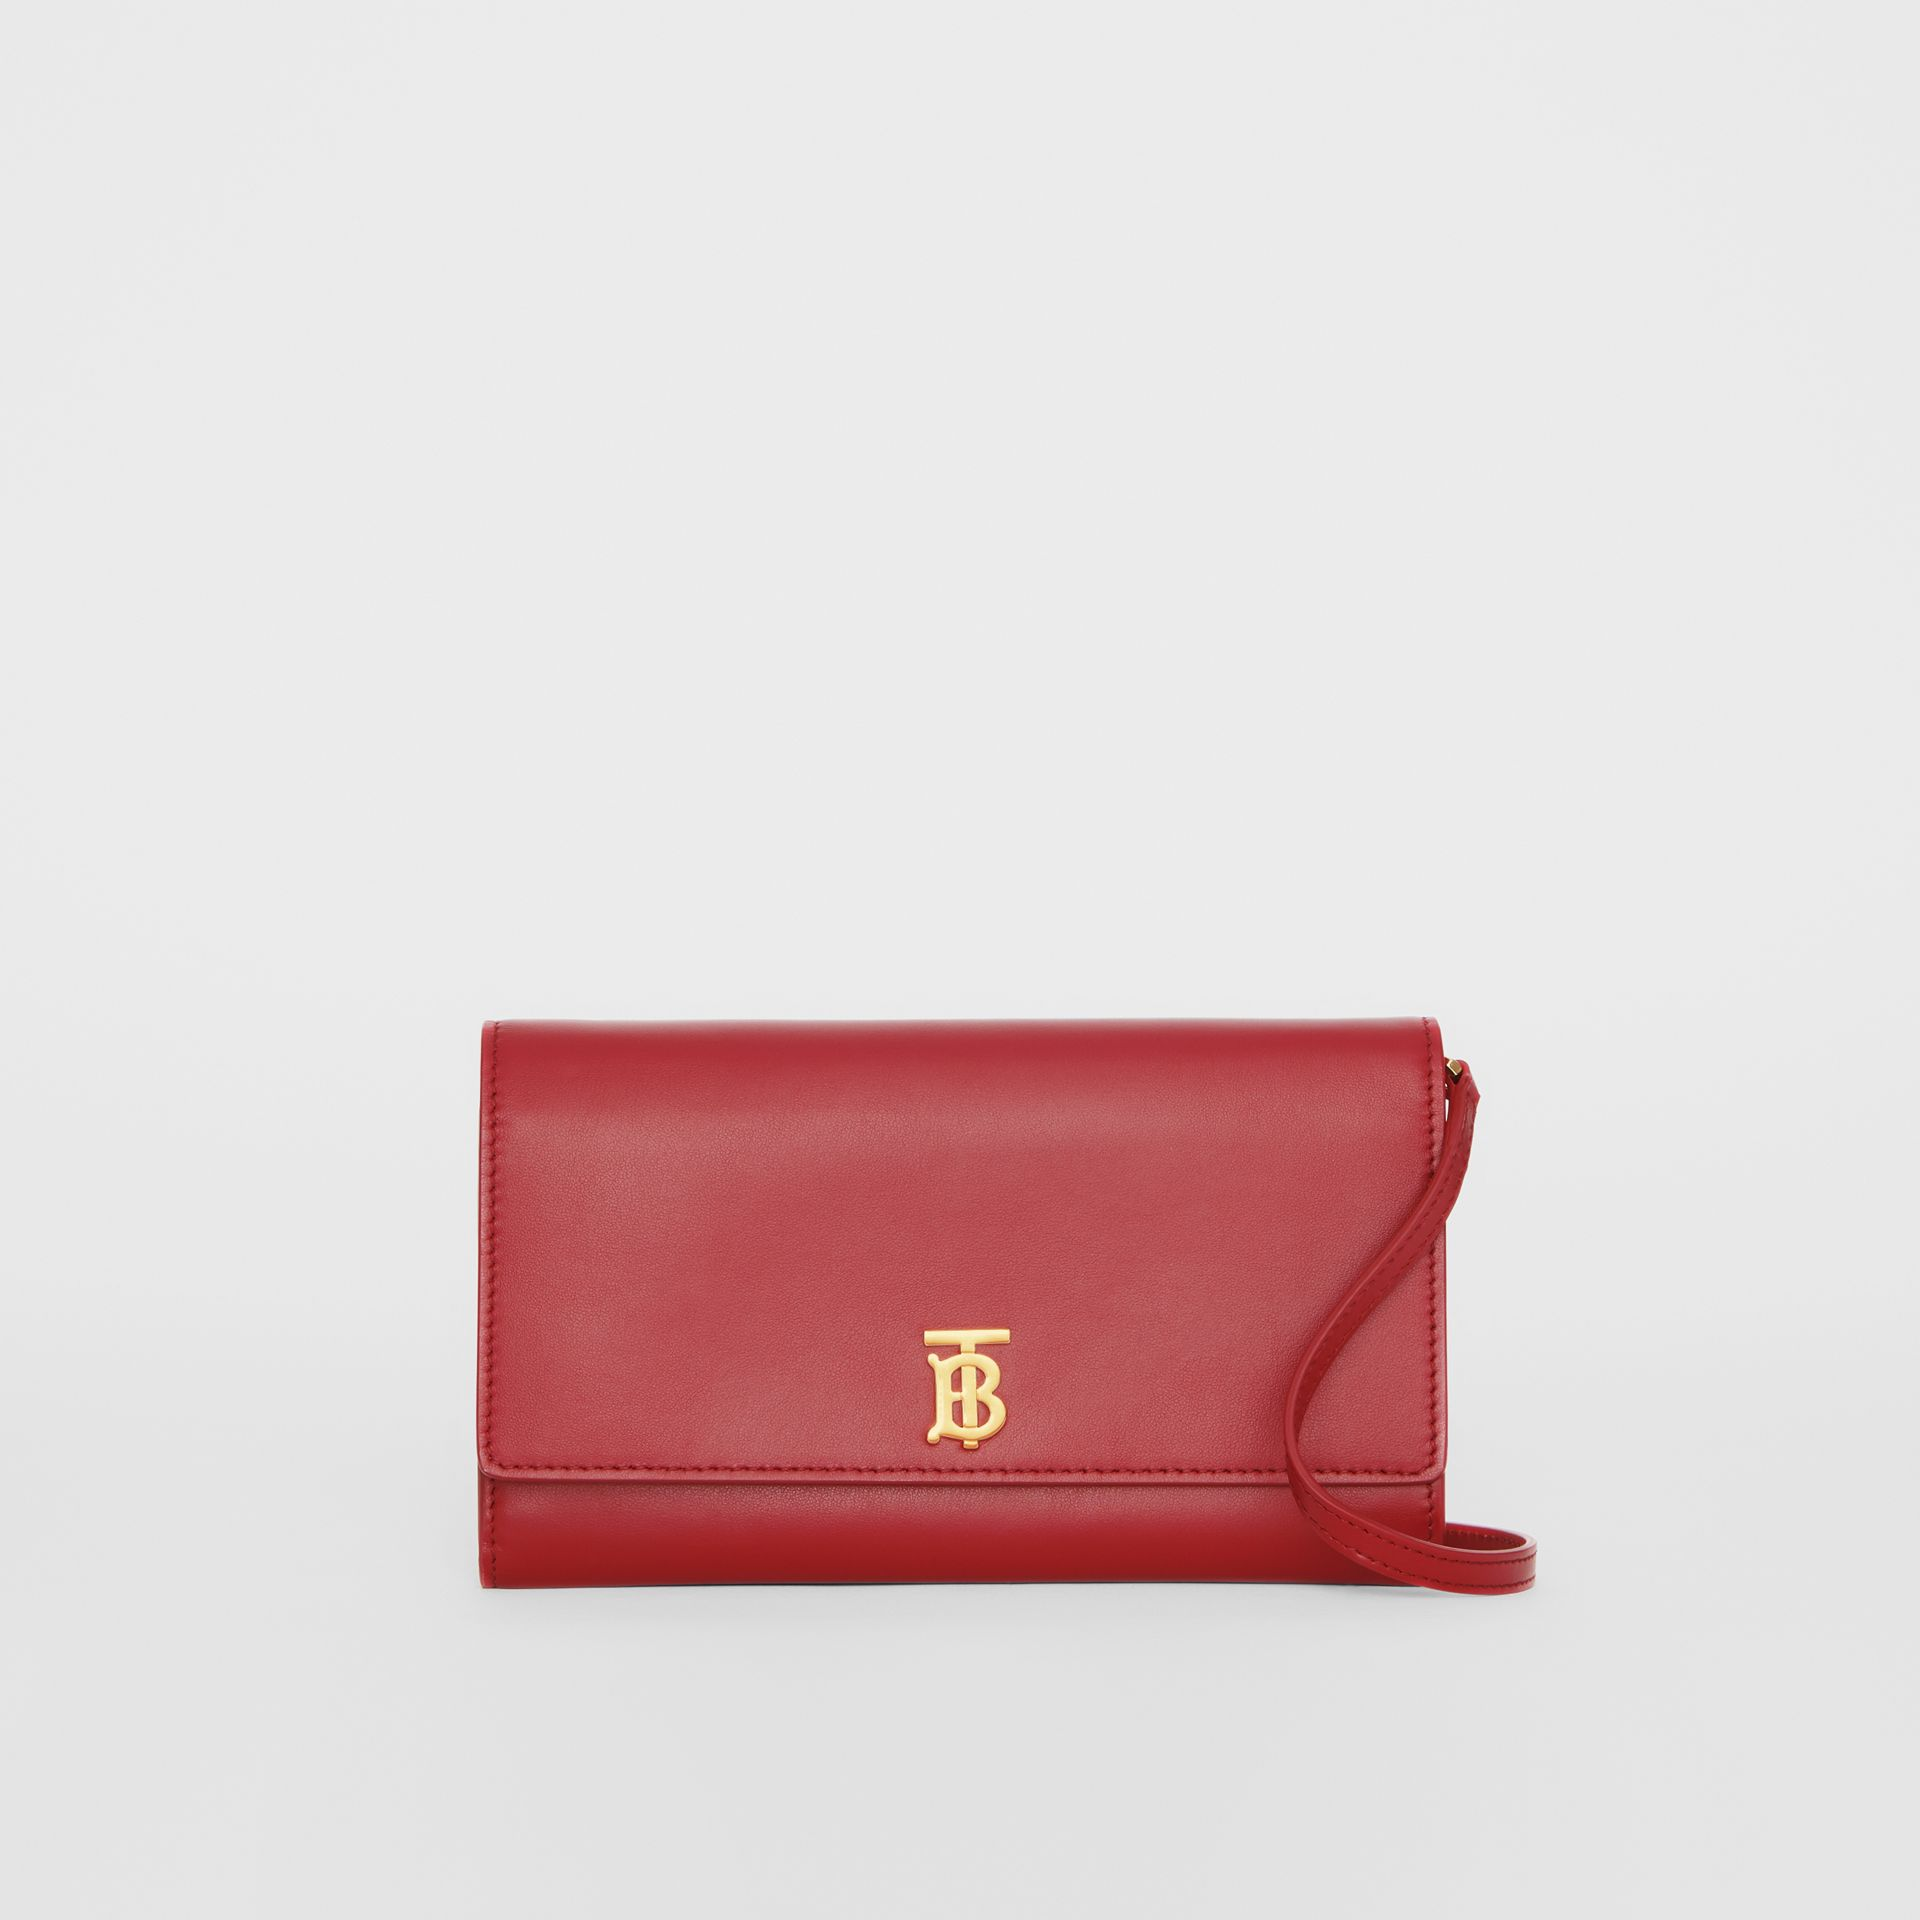 Portefeuille en cuir Monogram avec sangle amovible (Carmin) - Femme | Burberry - photo de la galerie 0